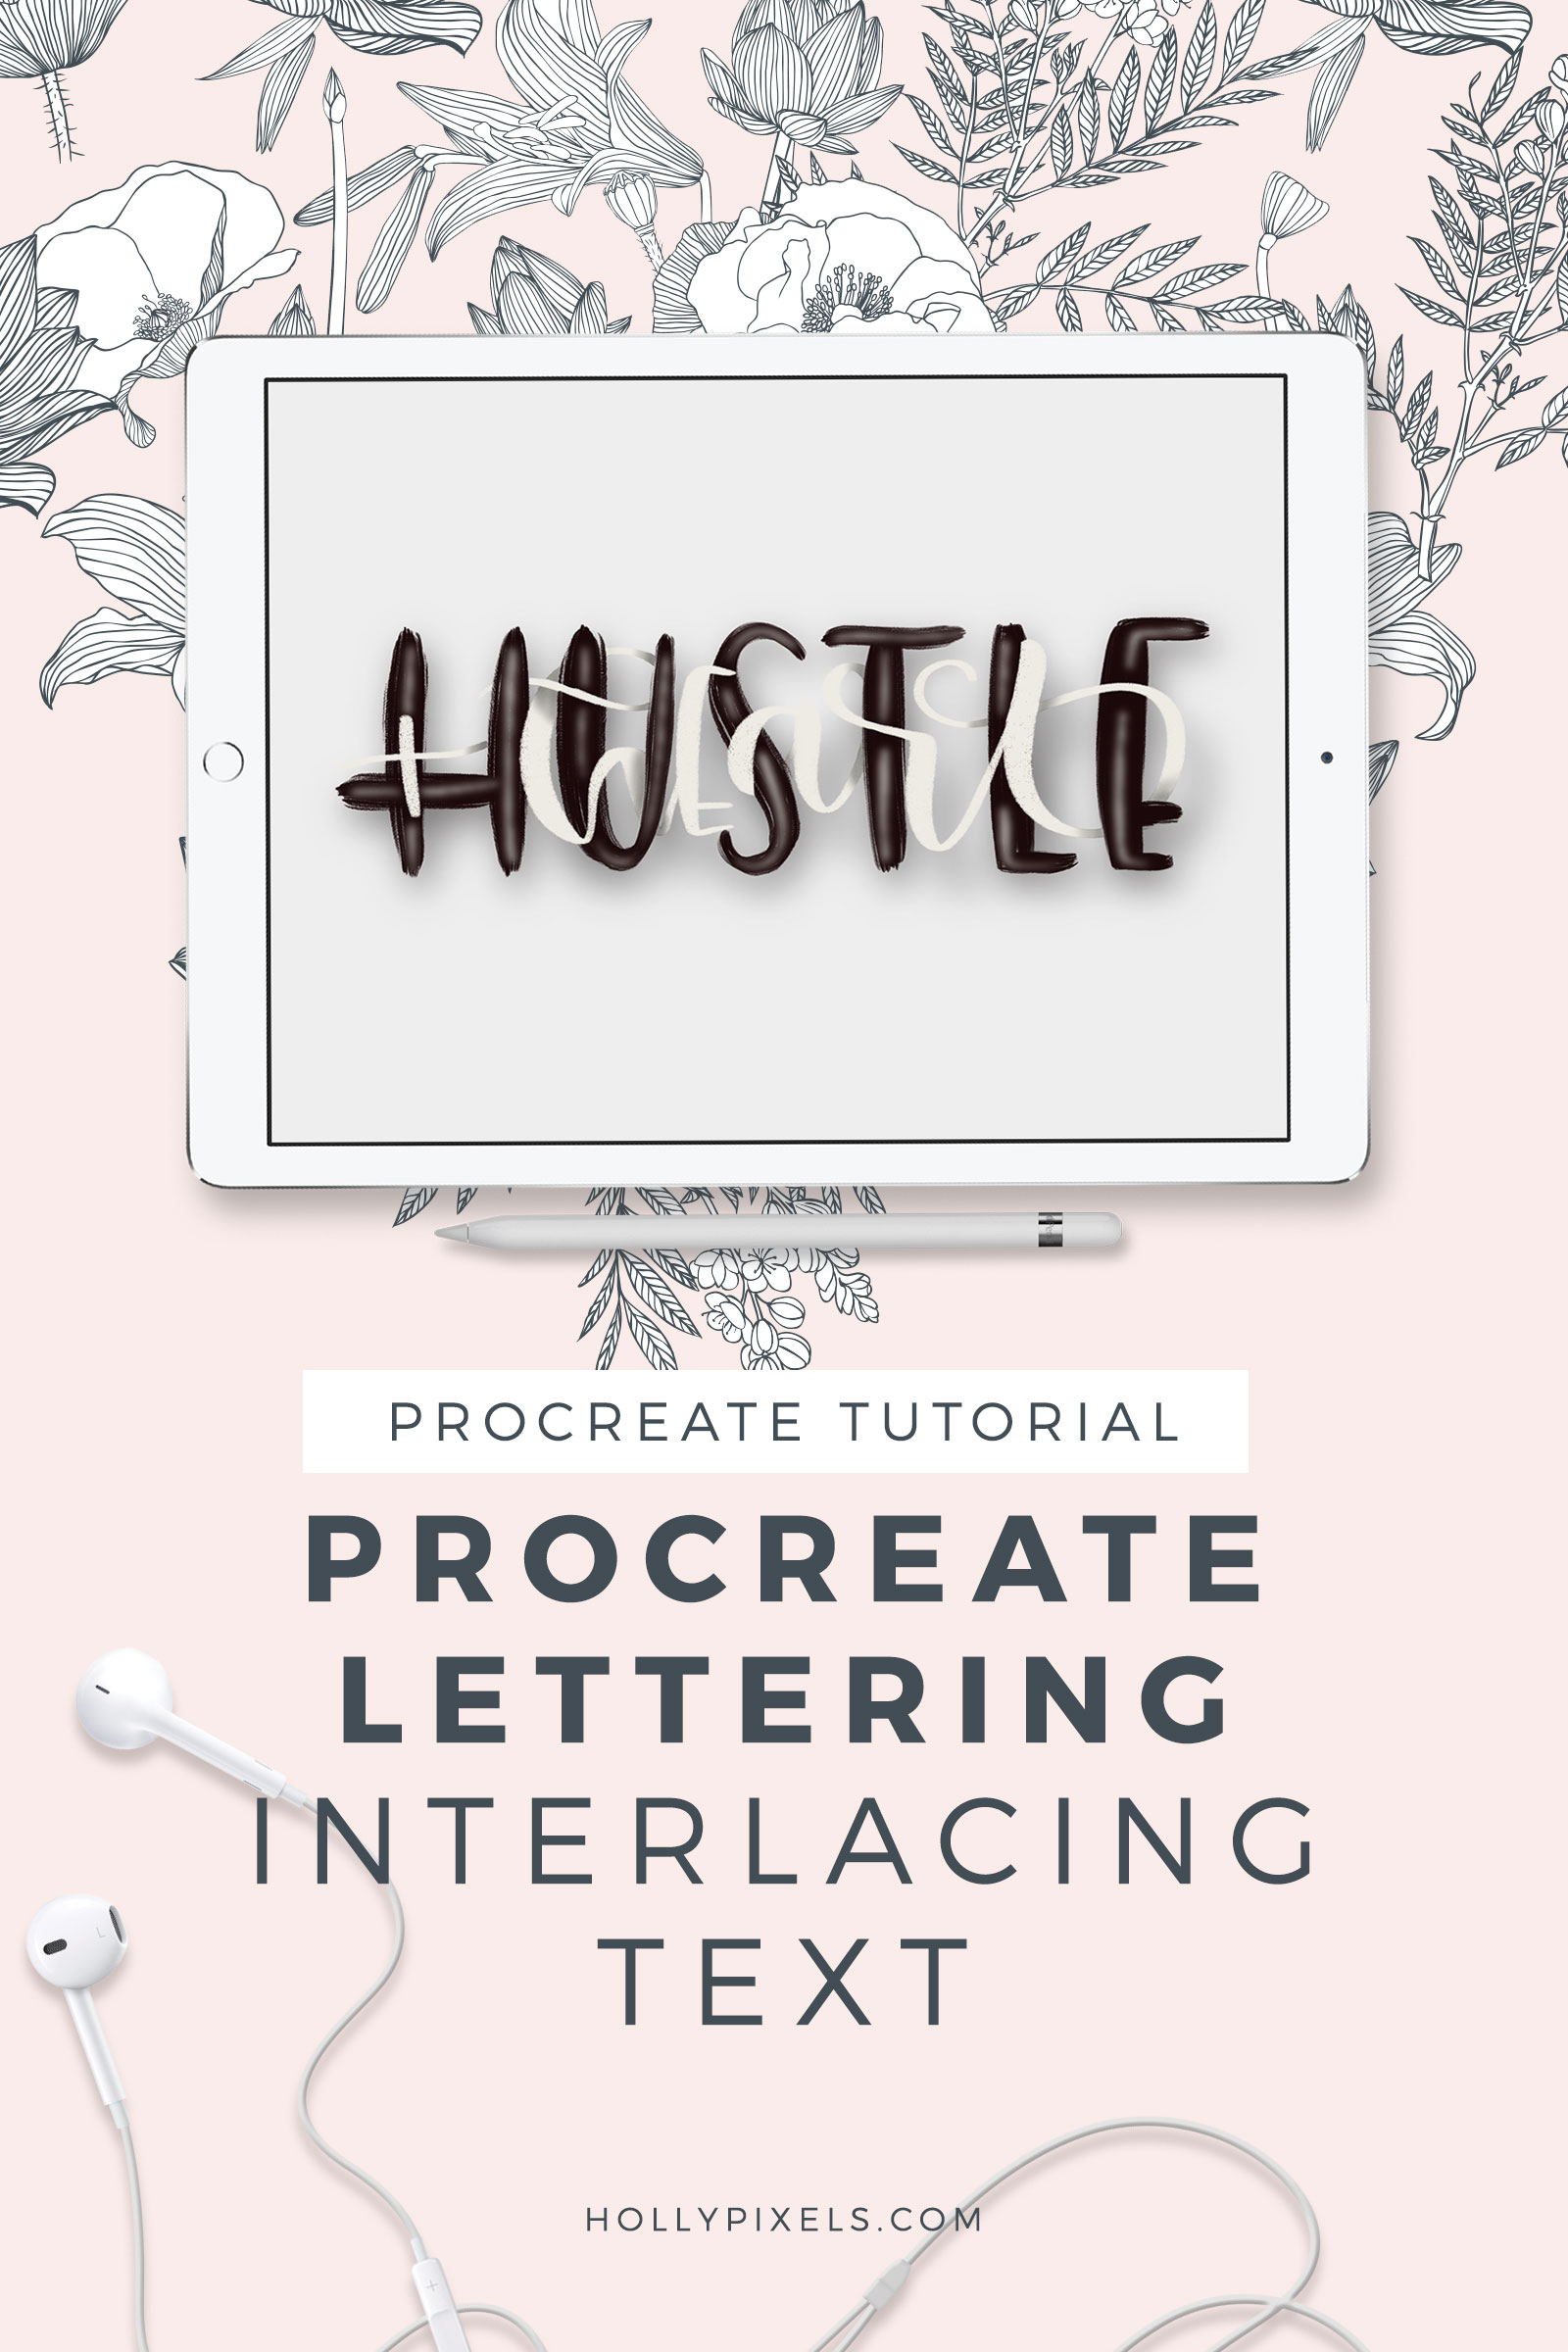 I'm excited to share this fun Procreate lettering tutorial with you today on interlacing text together. Coming up with fun ways to showcase your brush lettering should be part of your portfolio. This video tutorial will teach you at hollypixels.com.